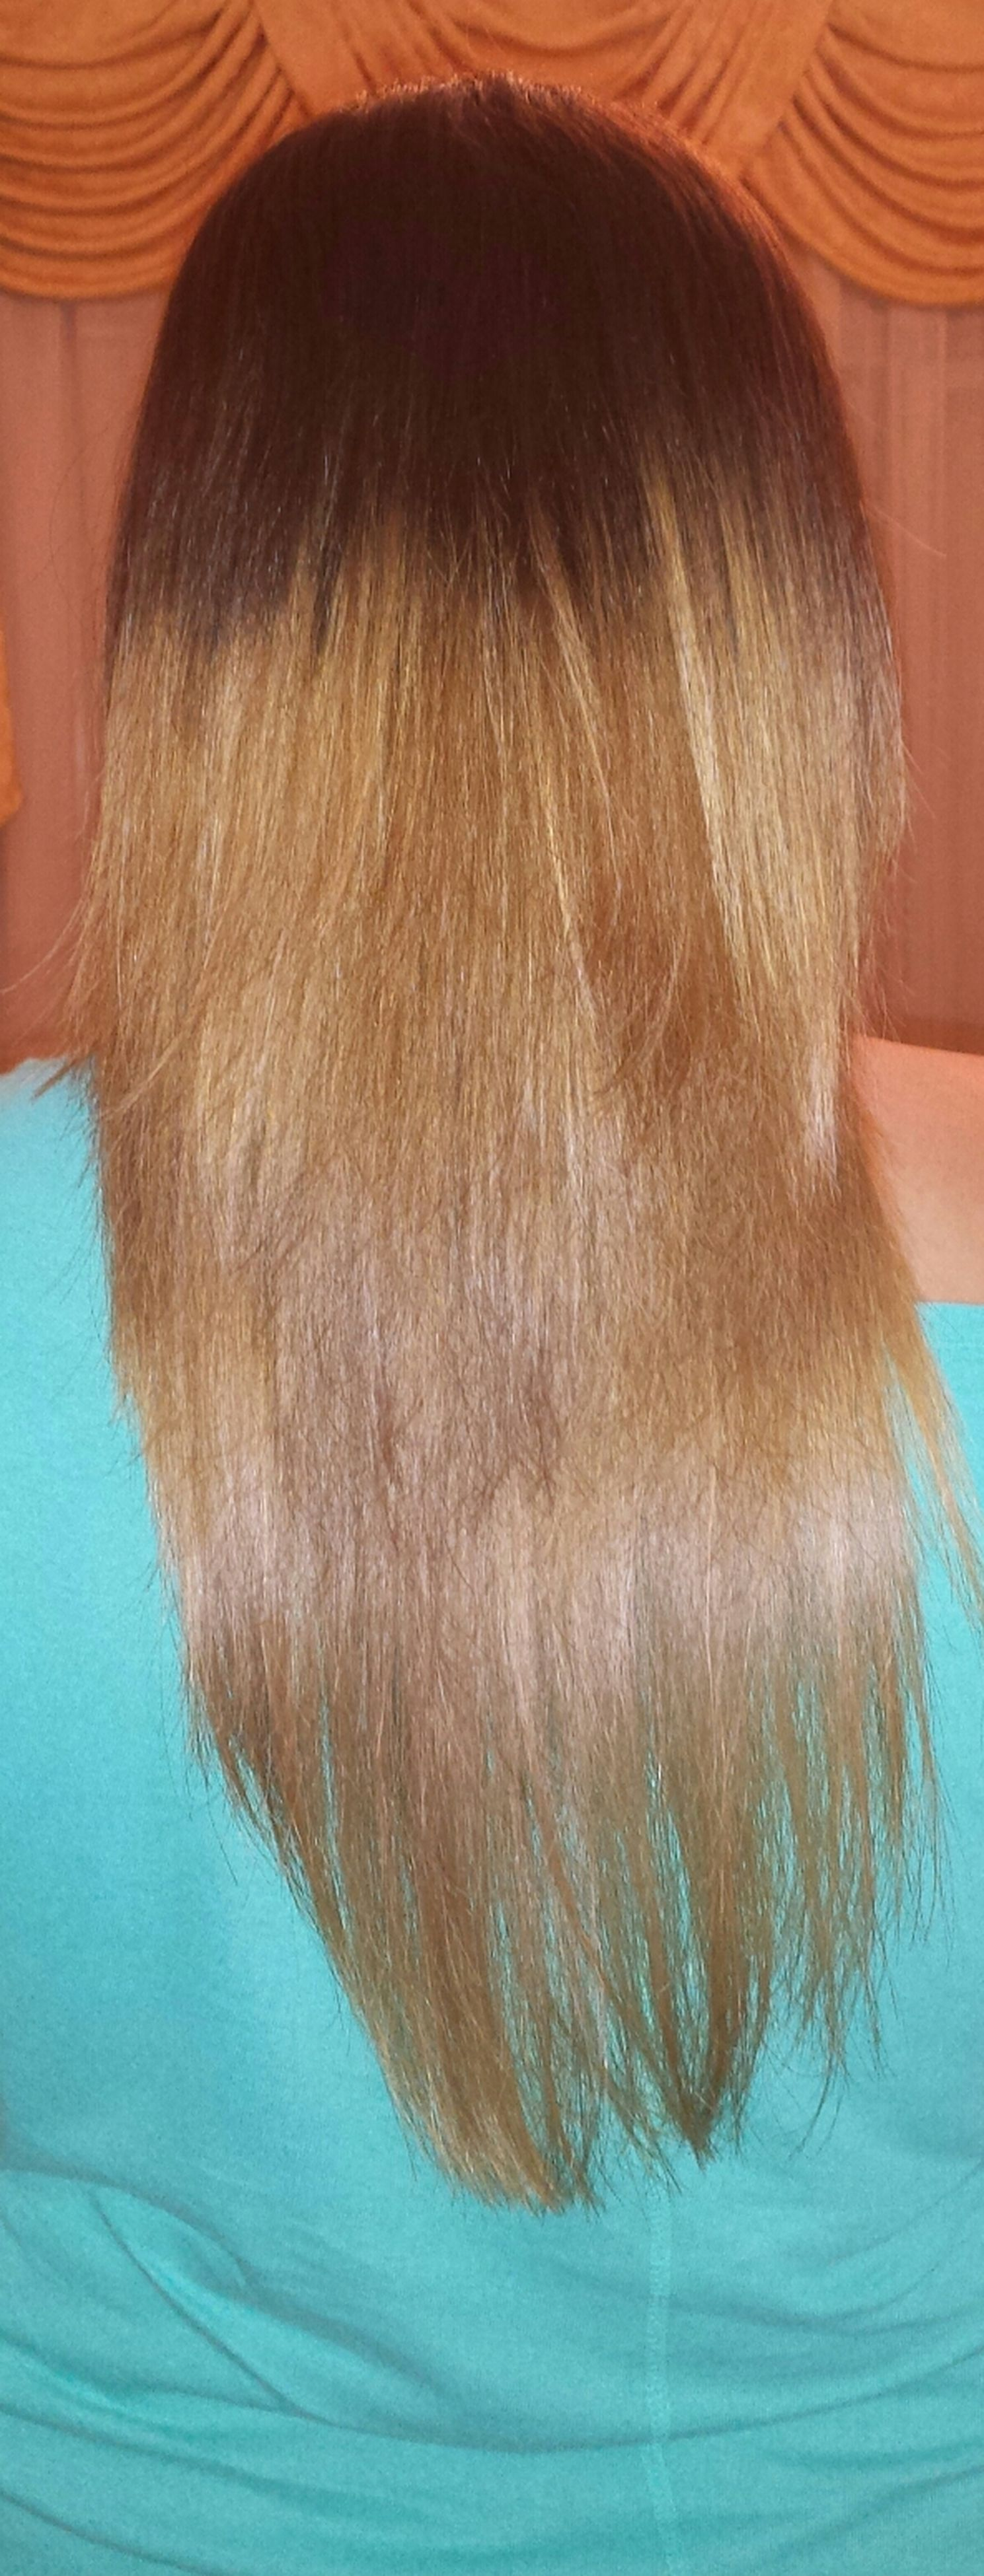 indoors, long hair, lifestyles, headshot, young women, leisure activity, blond hair, person, human hair, close-up, young adult, brown hair, rear view, girls, casual clothing, black hair, childhood